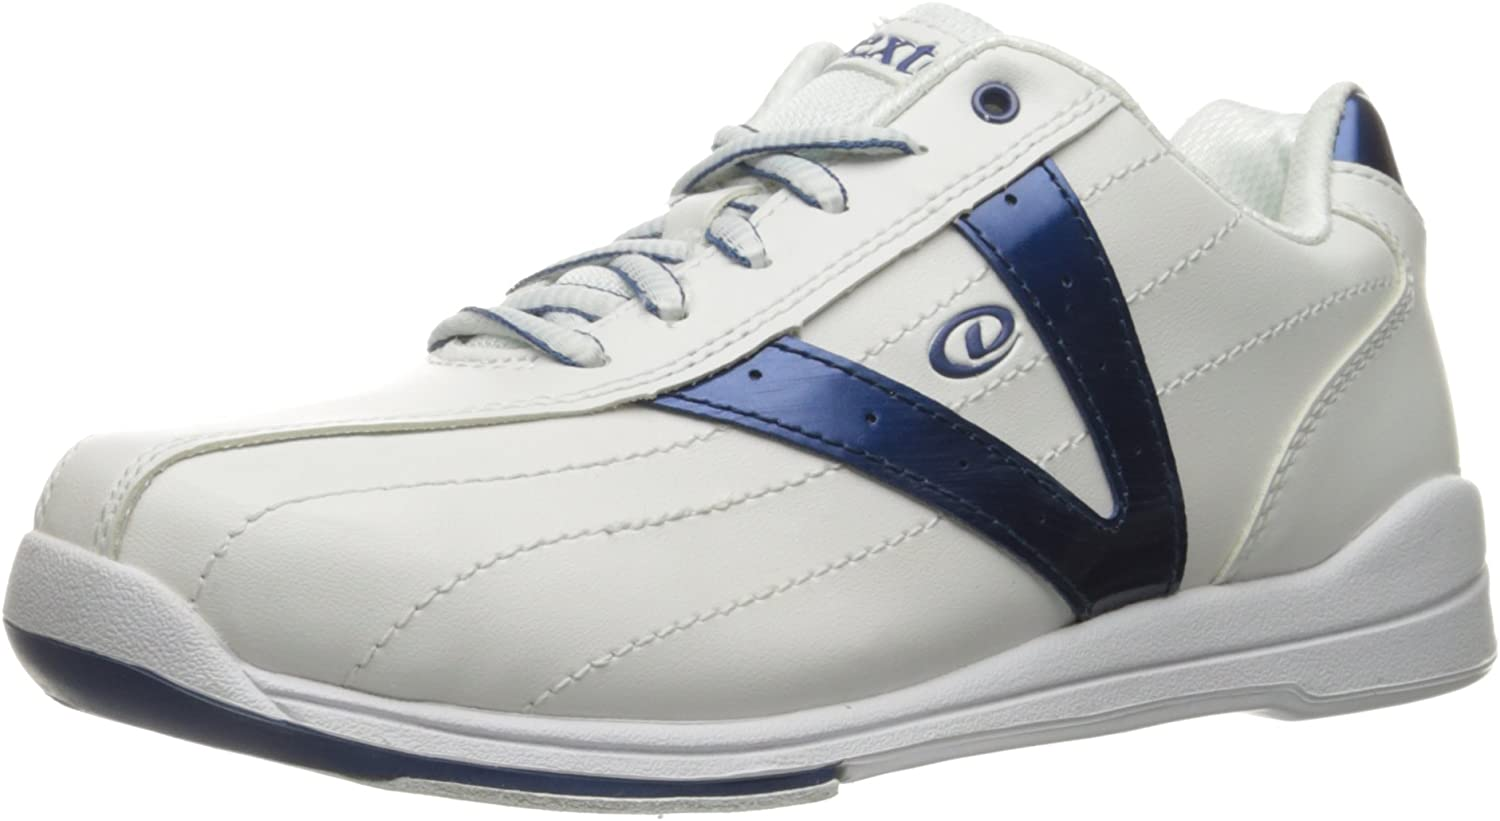 Dexter Vicky Bowling shoes, White blueee